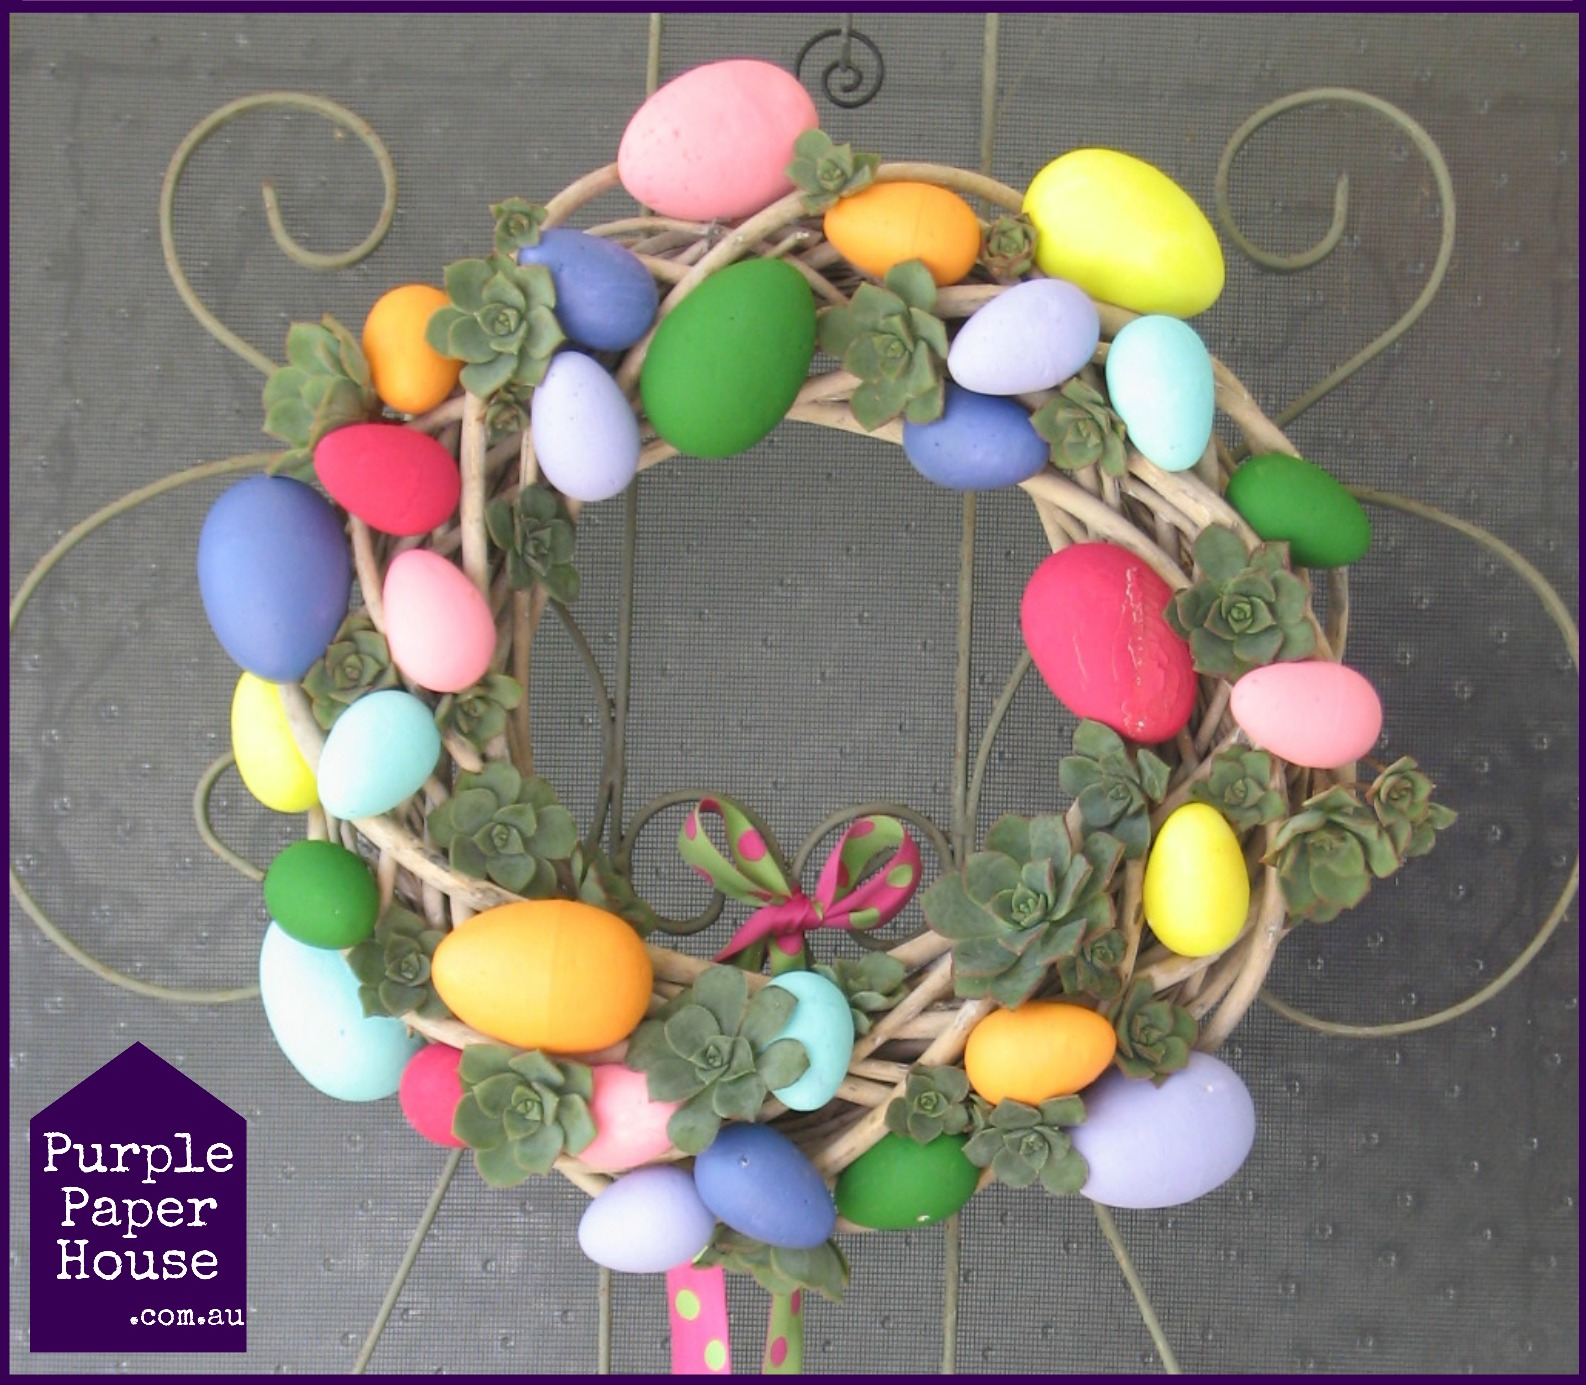 Should We Decorate At Easter?